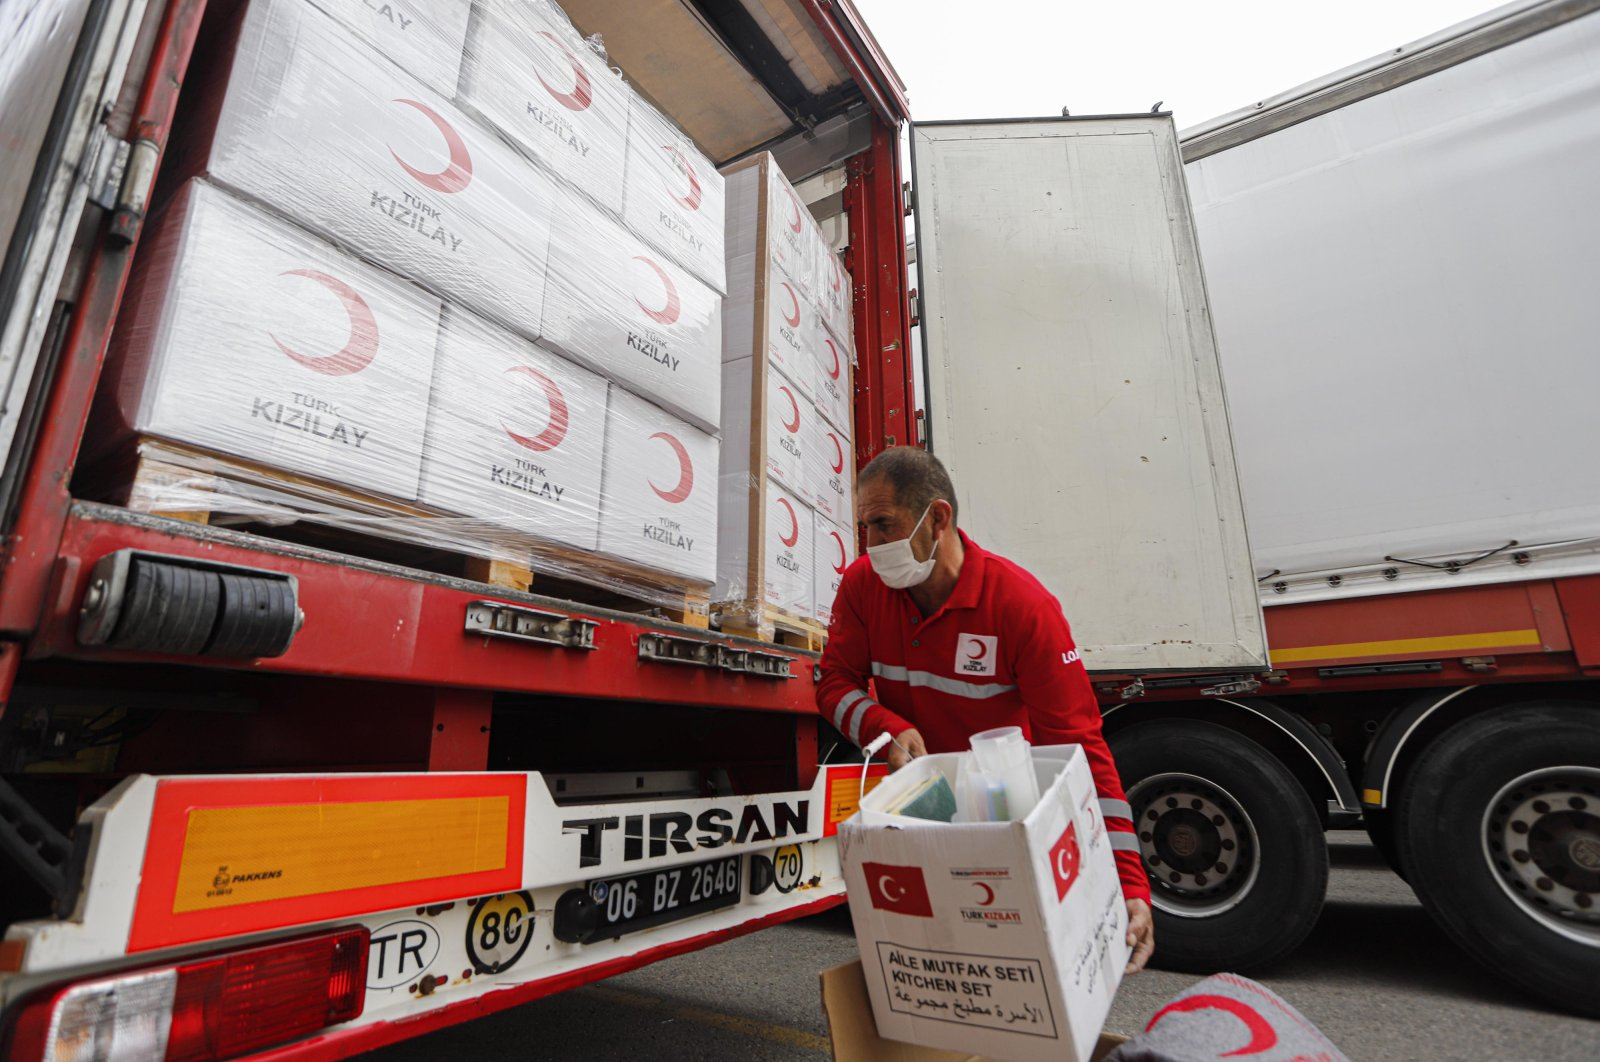 A Turkish Red Crescent employee loads humanitarian aid boxes into a truck that will soon depart for Azerbaijan, in Ankara, Turkey, Oct. 9, 2020. (DHA Photo)